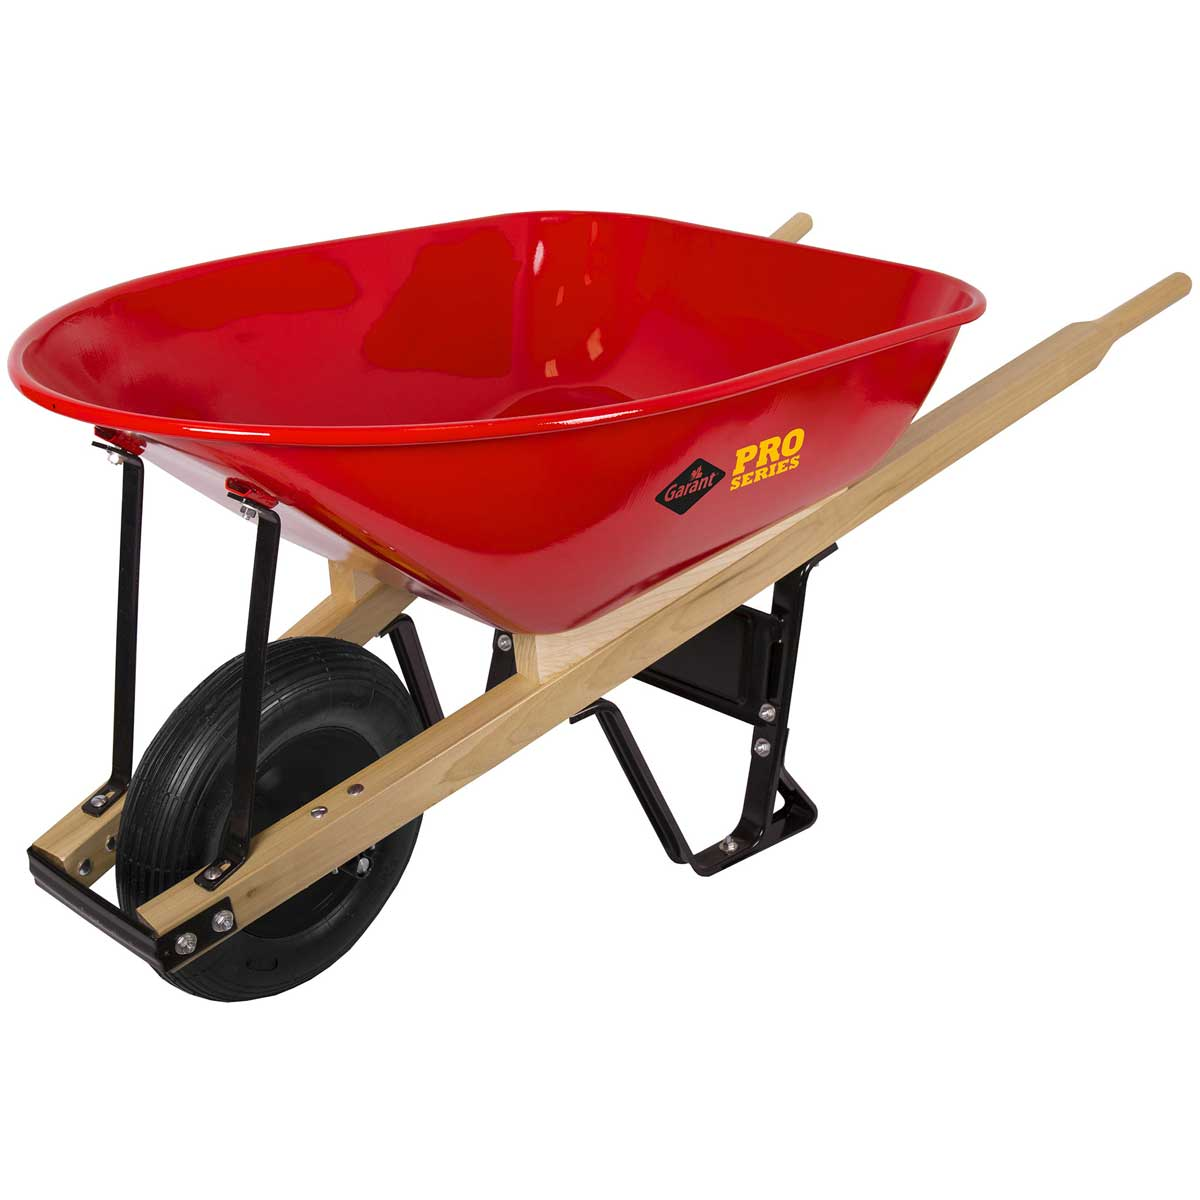 Garant Industrial Wheelbarrow 6 CU FT